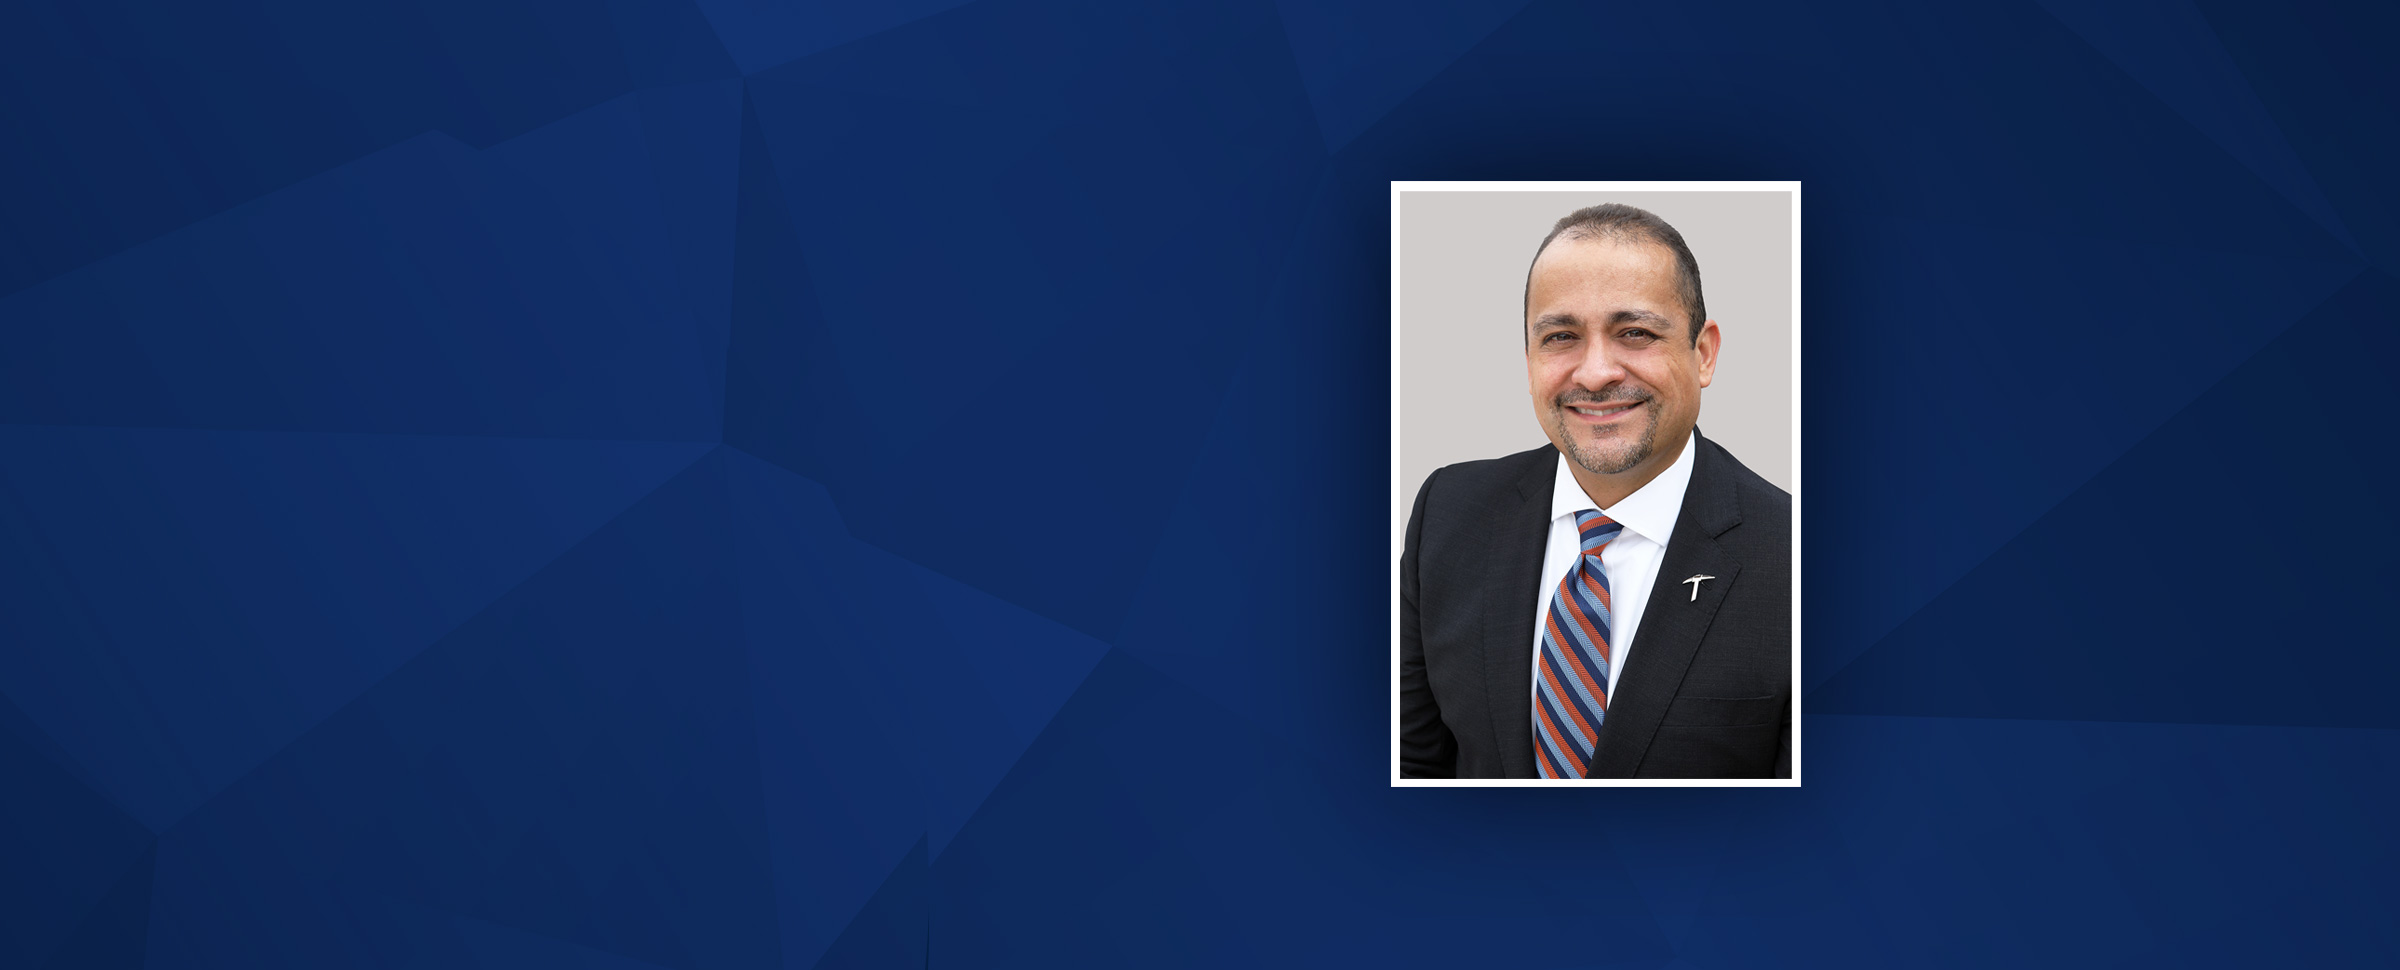 UTEP Appoints Luis Hernandez as Vice President for Information Resources